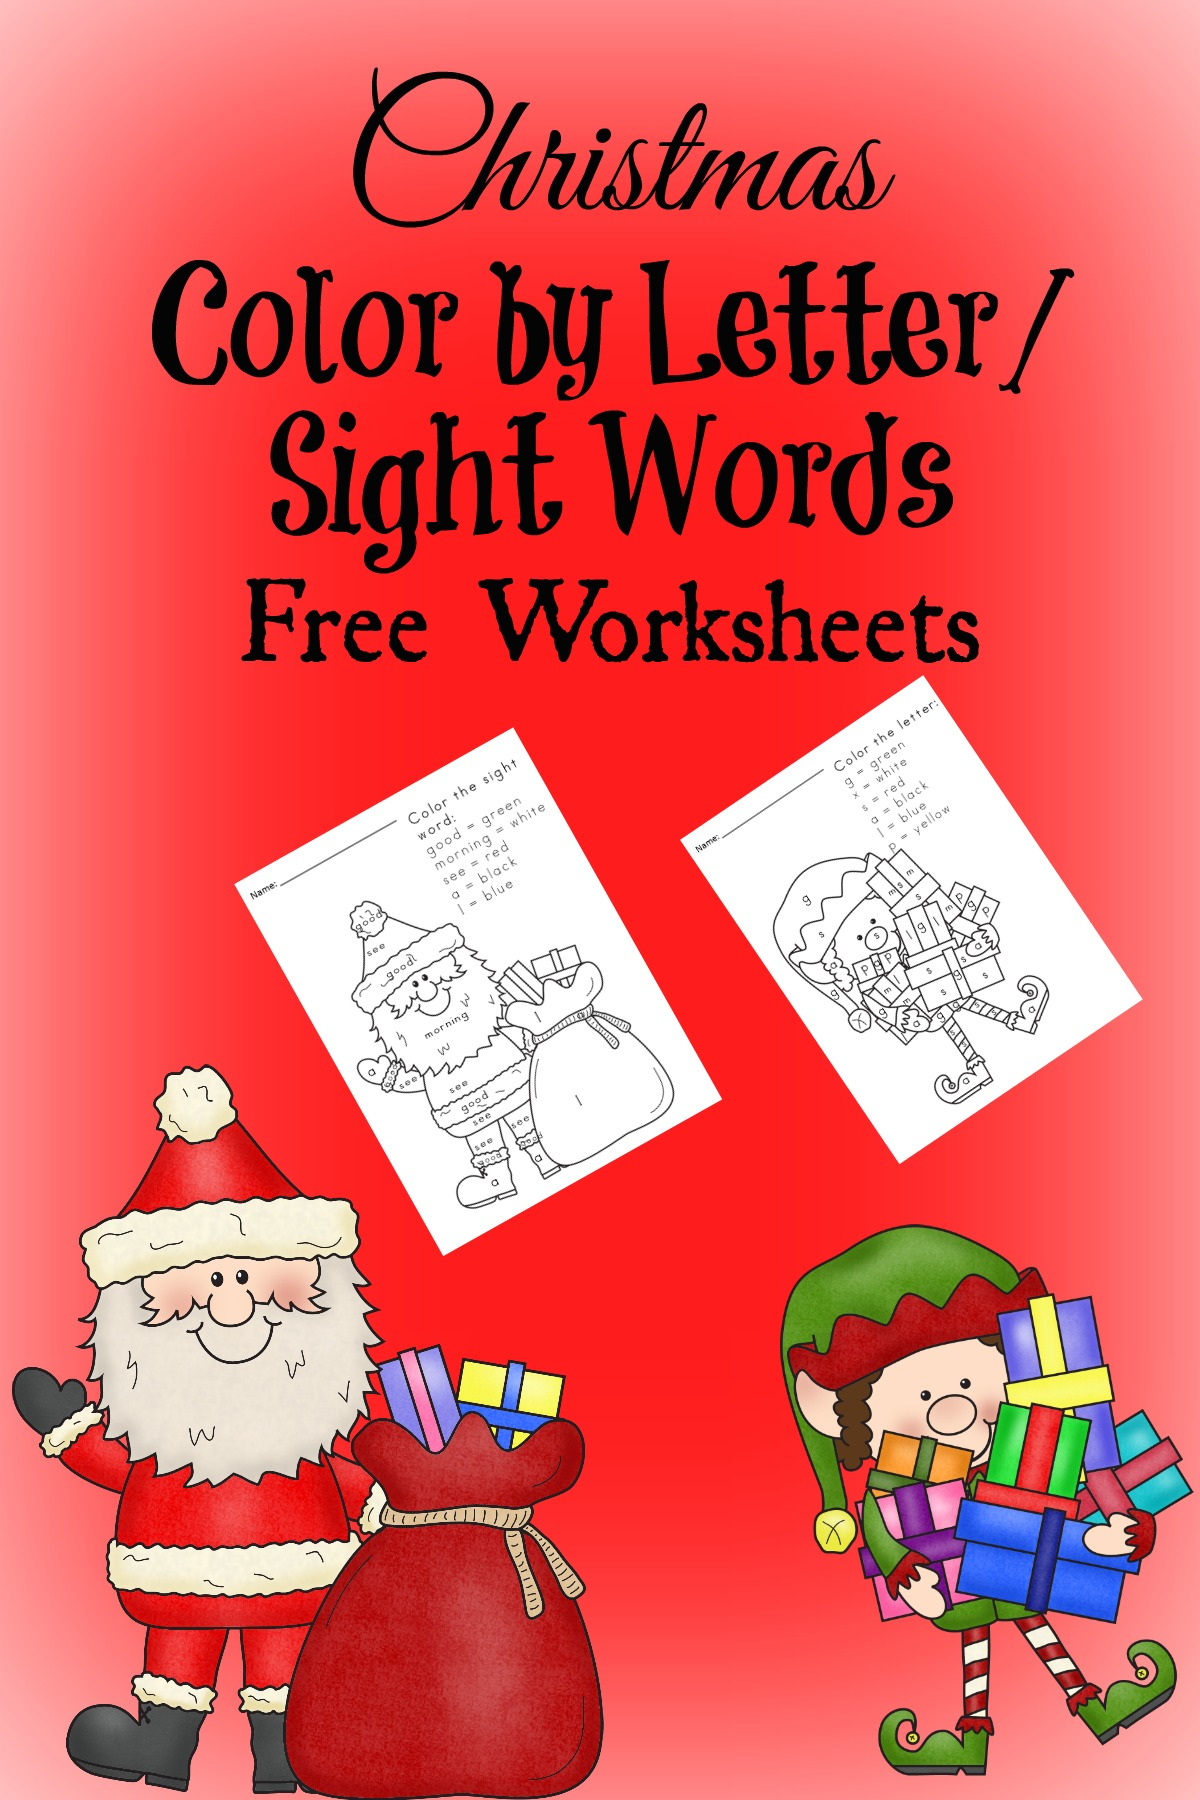 Free Christmas Worksheets For Kids Color By Letter Sight